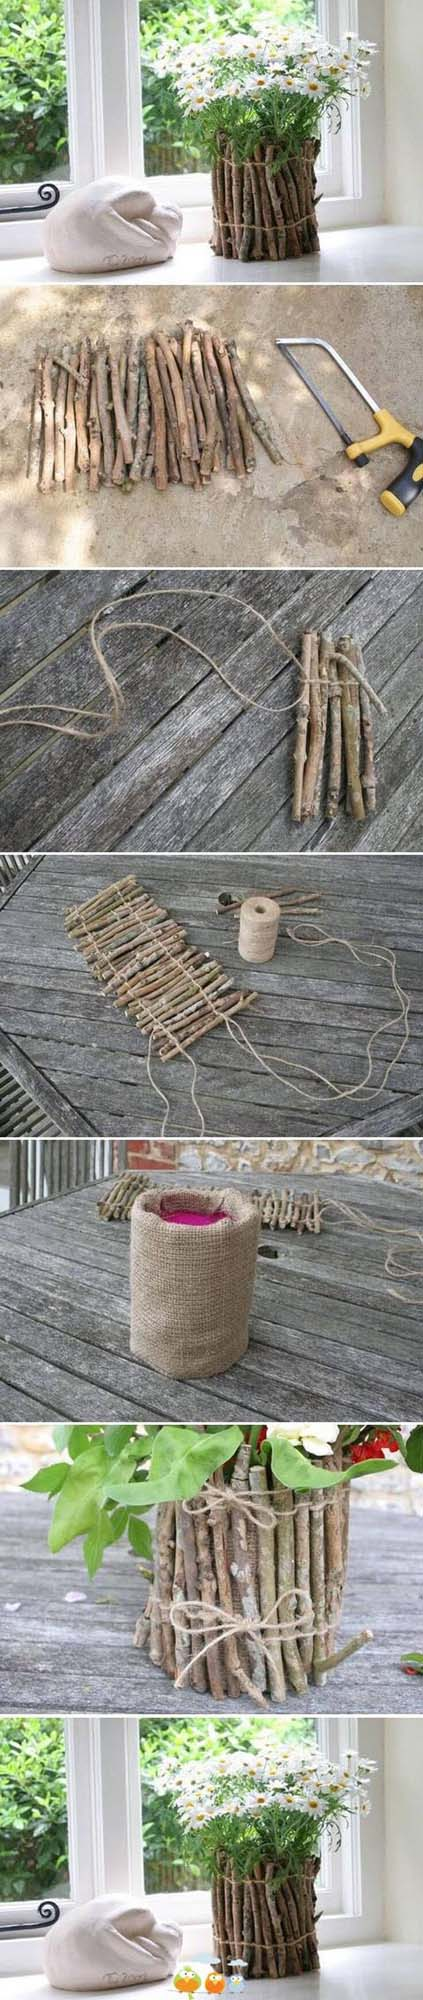 Burlap Lined Natural Stick Planter #diy #flowerpot #garden #flower #decorhomeideas